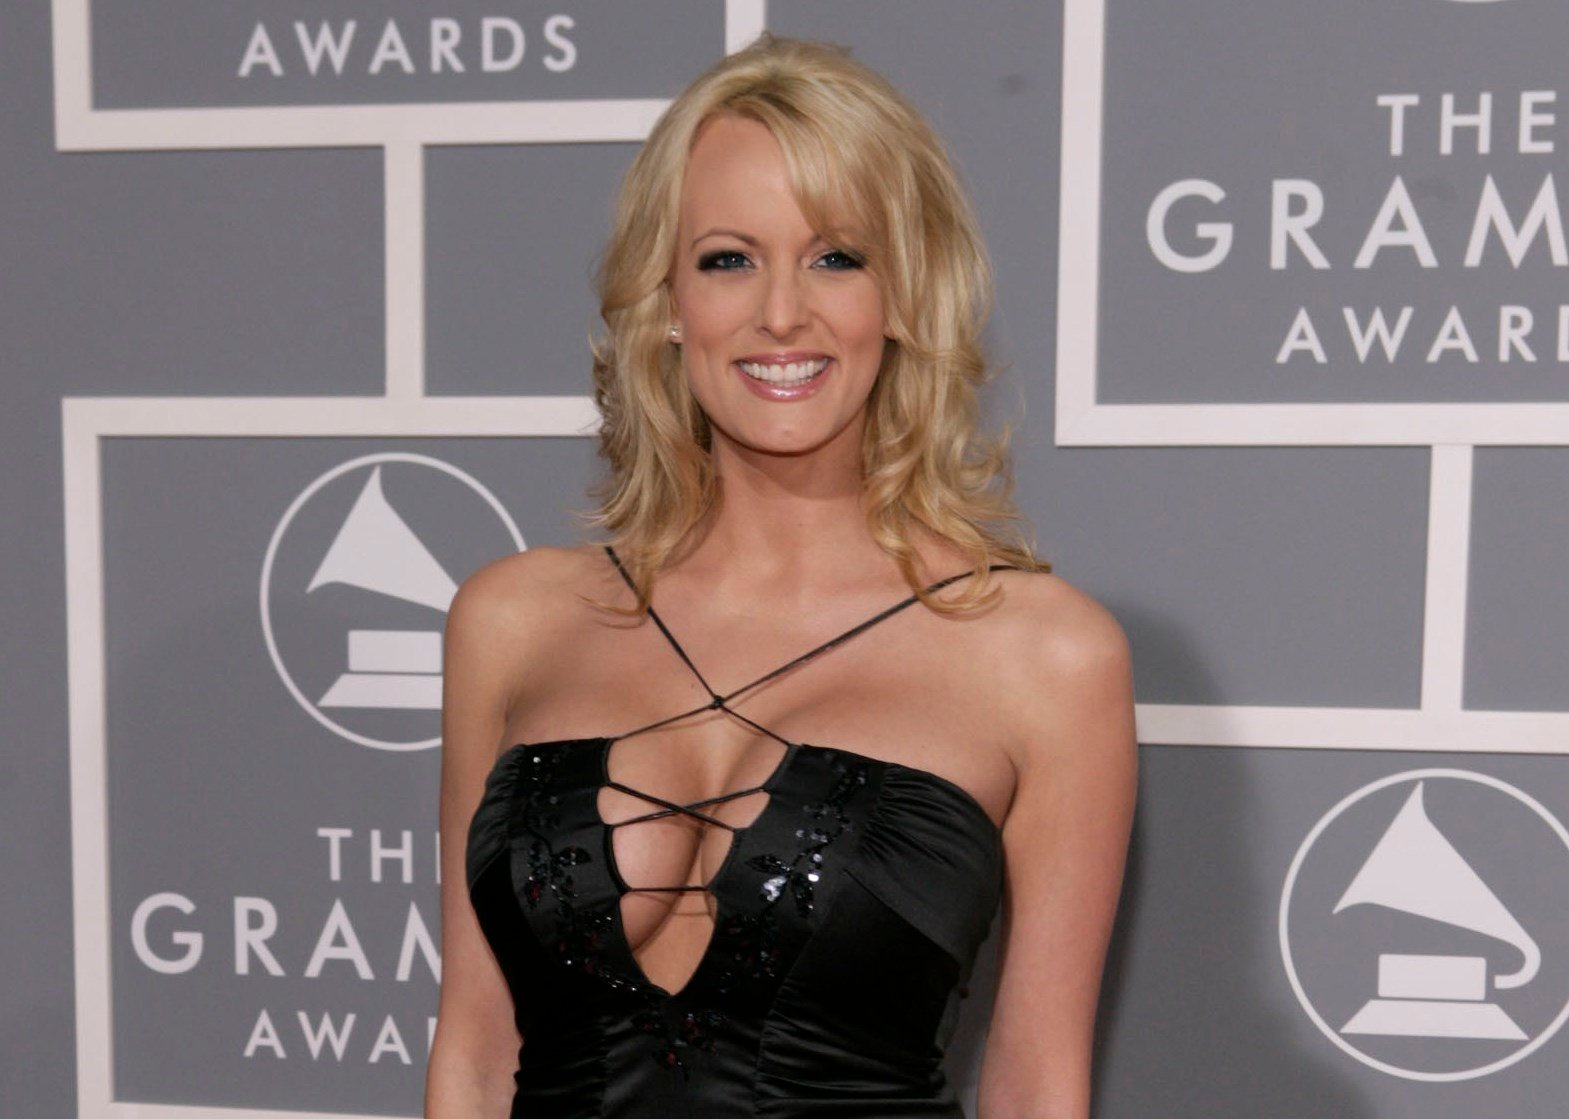 Trump ends the charade, directly engages in Stormy Daniels lawsuit